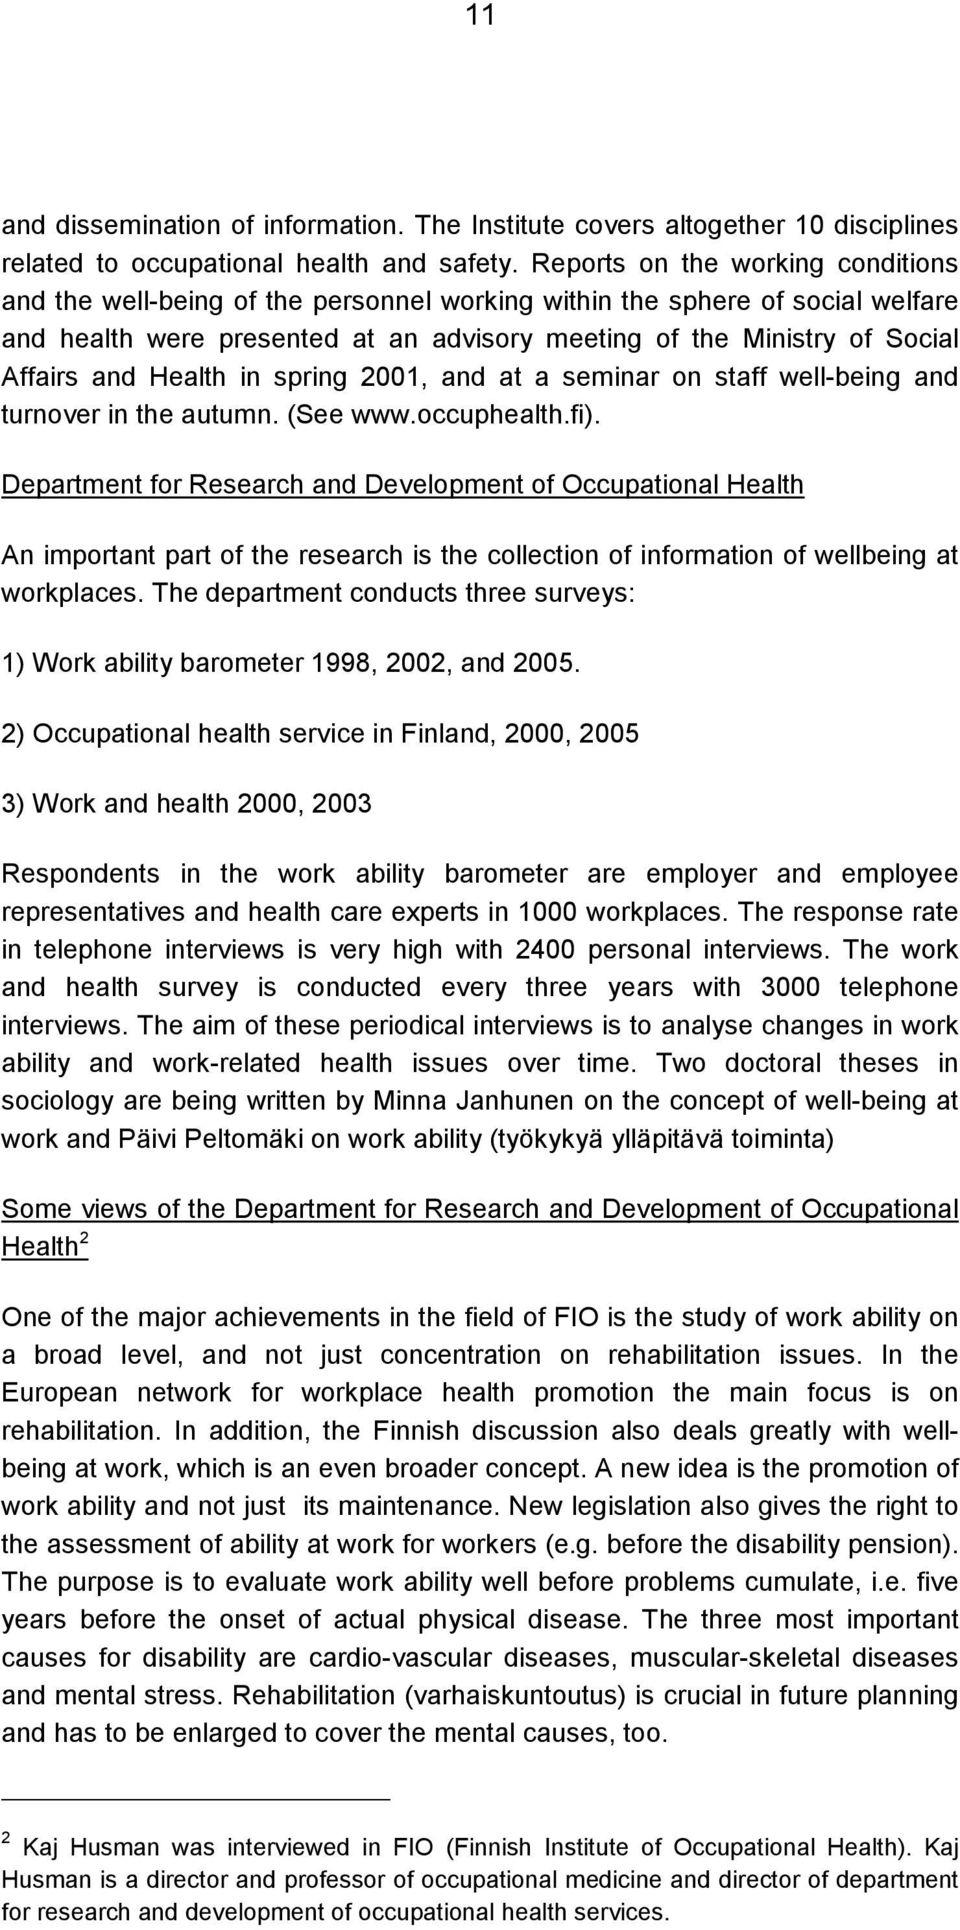 and Health in spring 2001, and at a seminar on staff well-being and turnover in the autumn. (See www.occuphealth.fi).